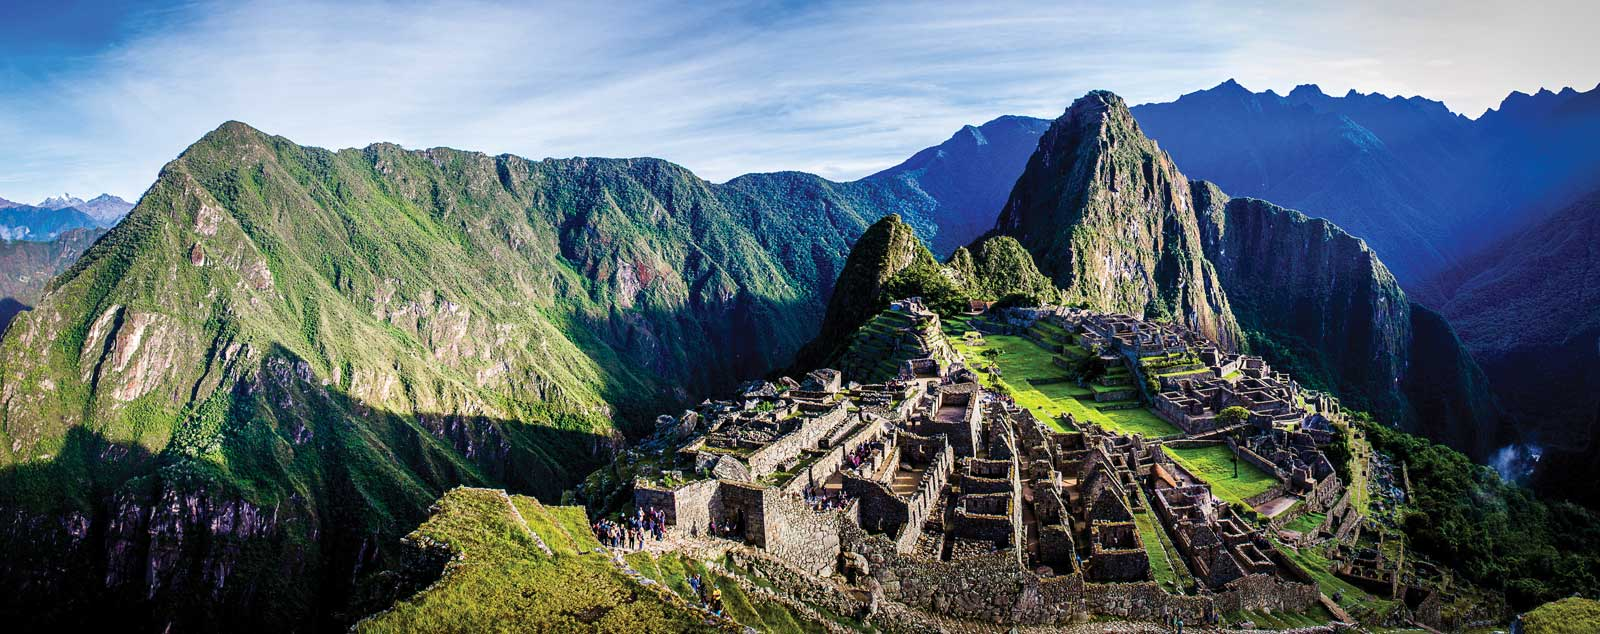 The ruins of Machu Picchu high in the green Andes Mountains under a bright blue sky.